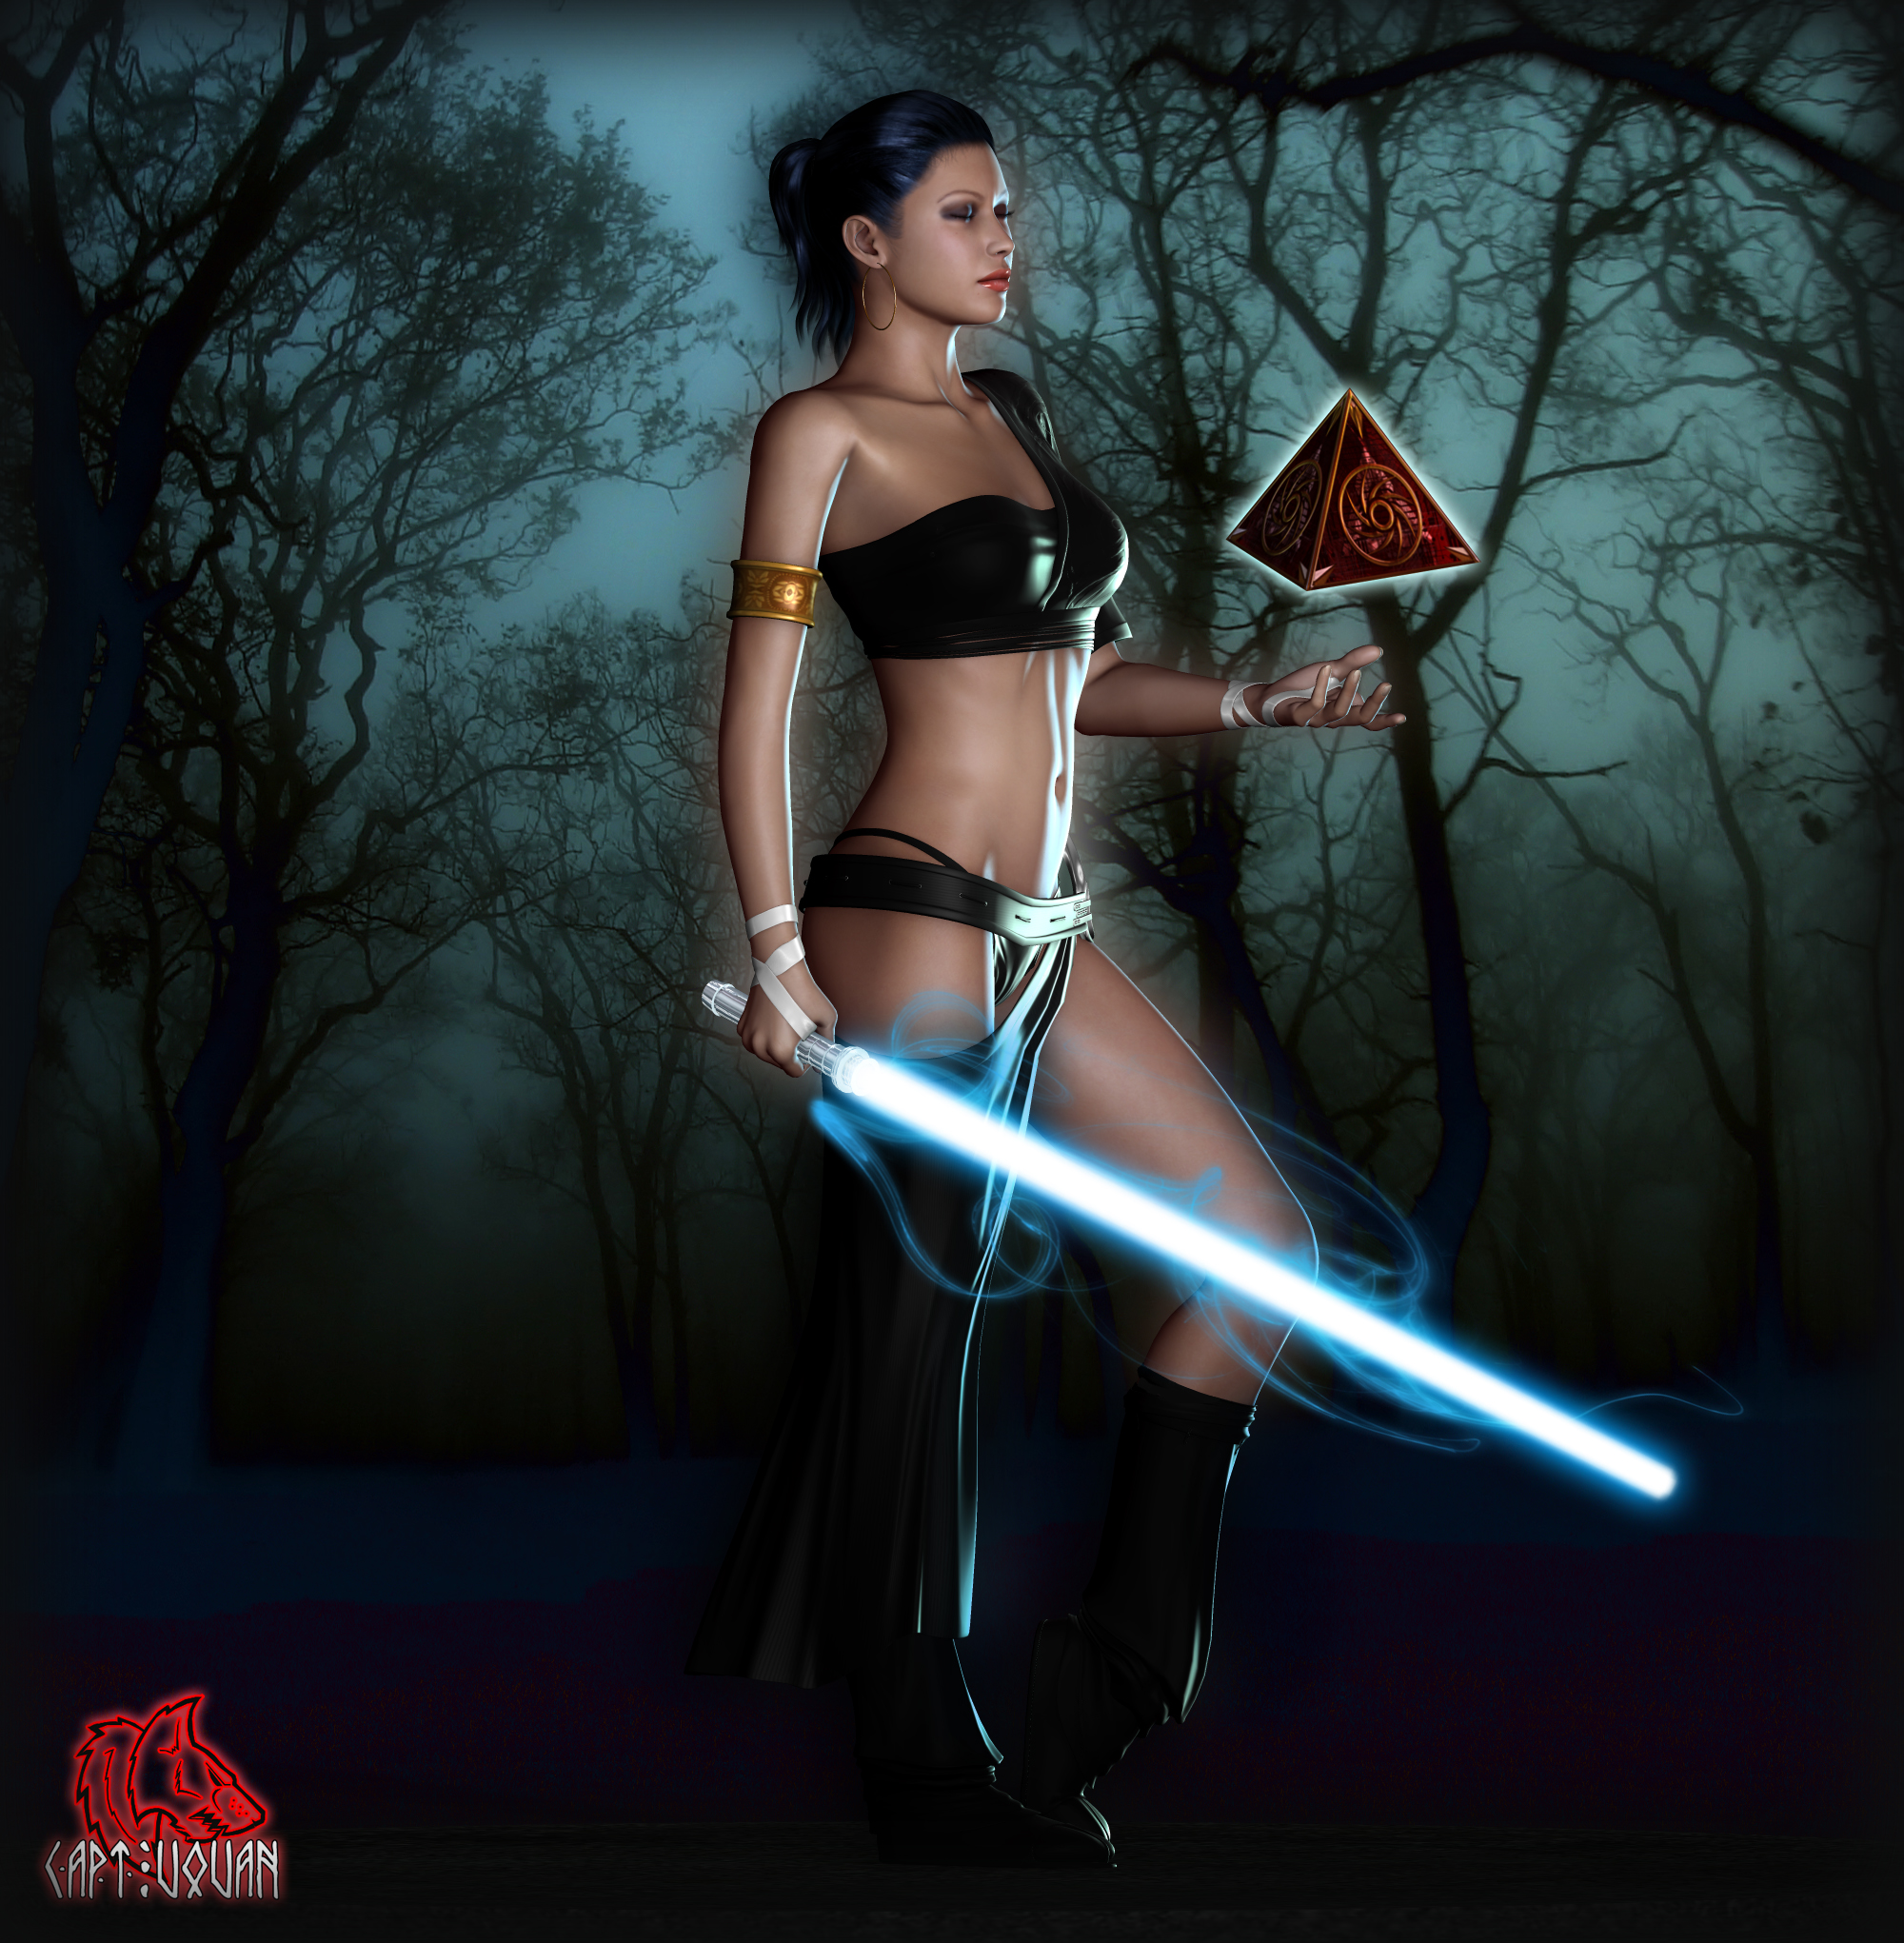 Nude jedi 2 mod jedi outcast erotic streaming